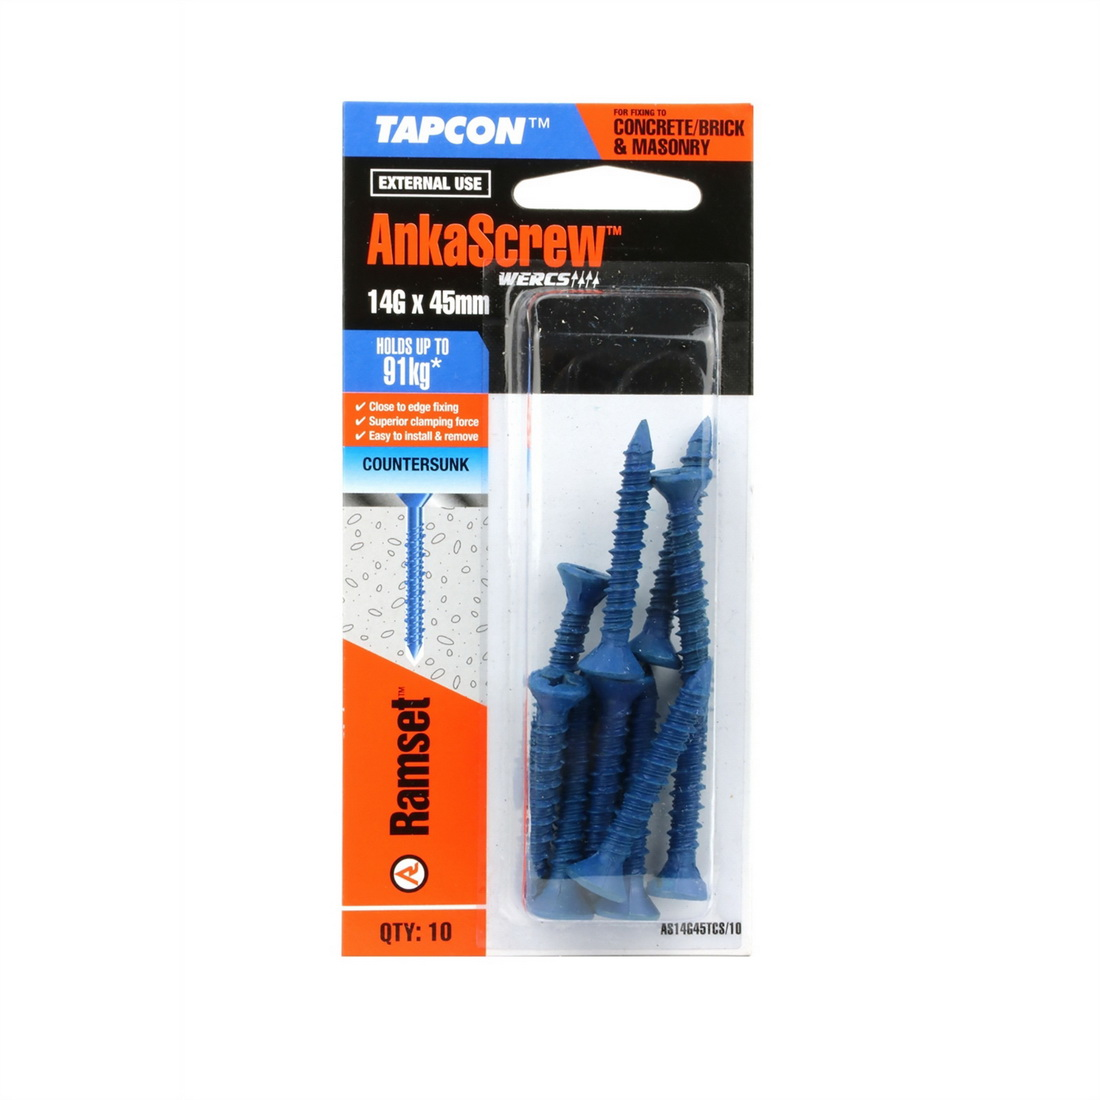 Tapcon Ankascrew Countersunk Head Masonry Screw 14G 45mm Carbon Steel 10 pack AS14G45TCS/10